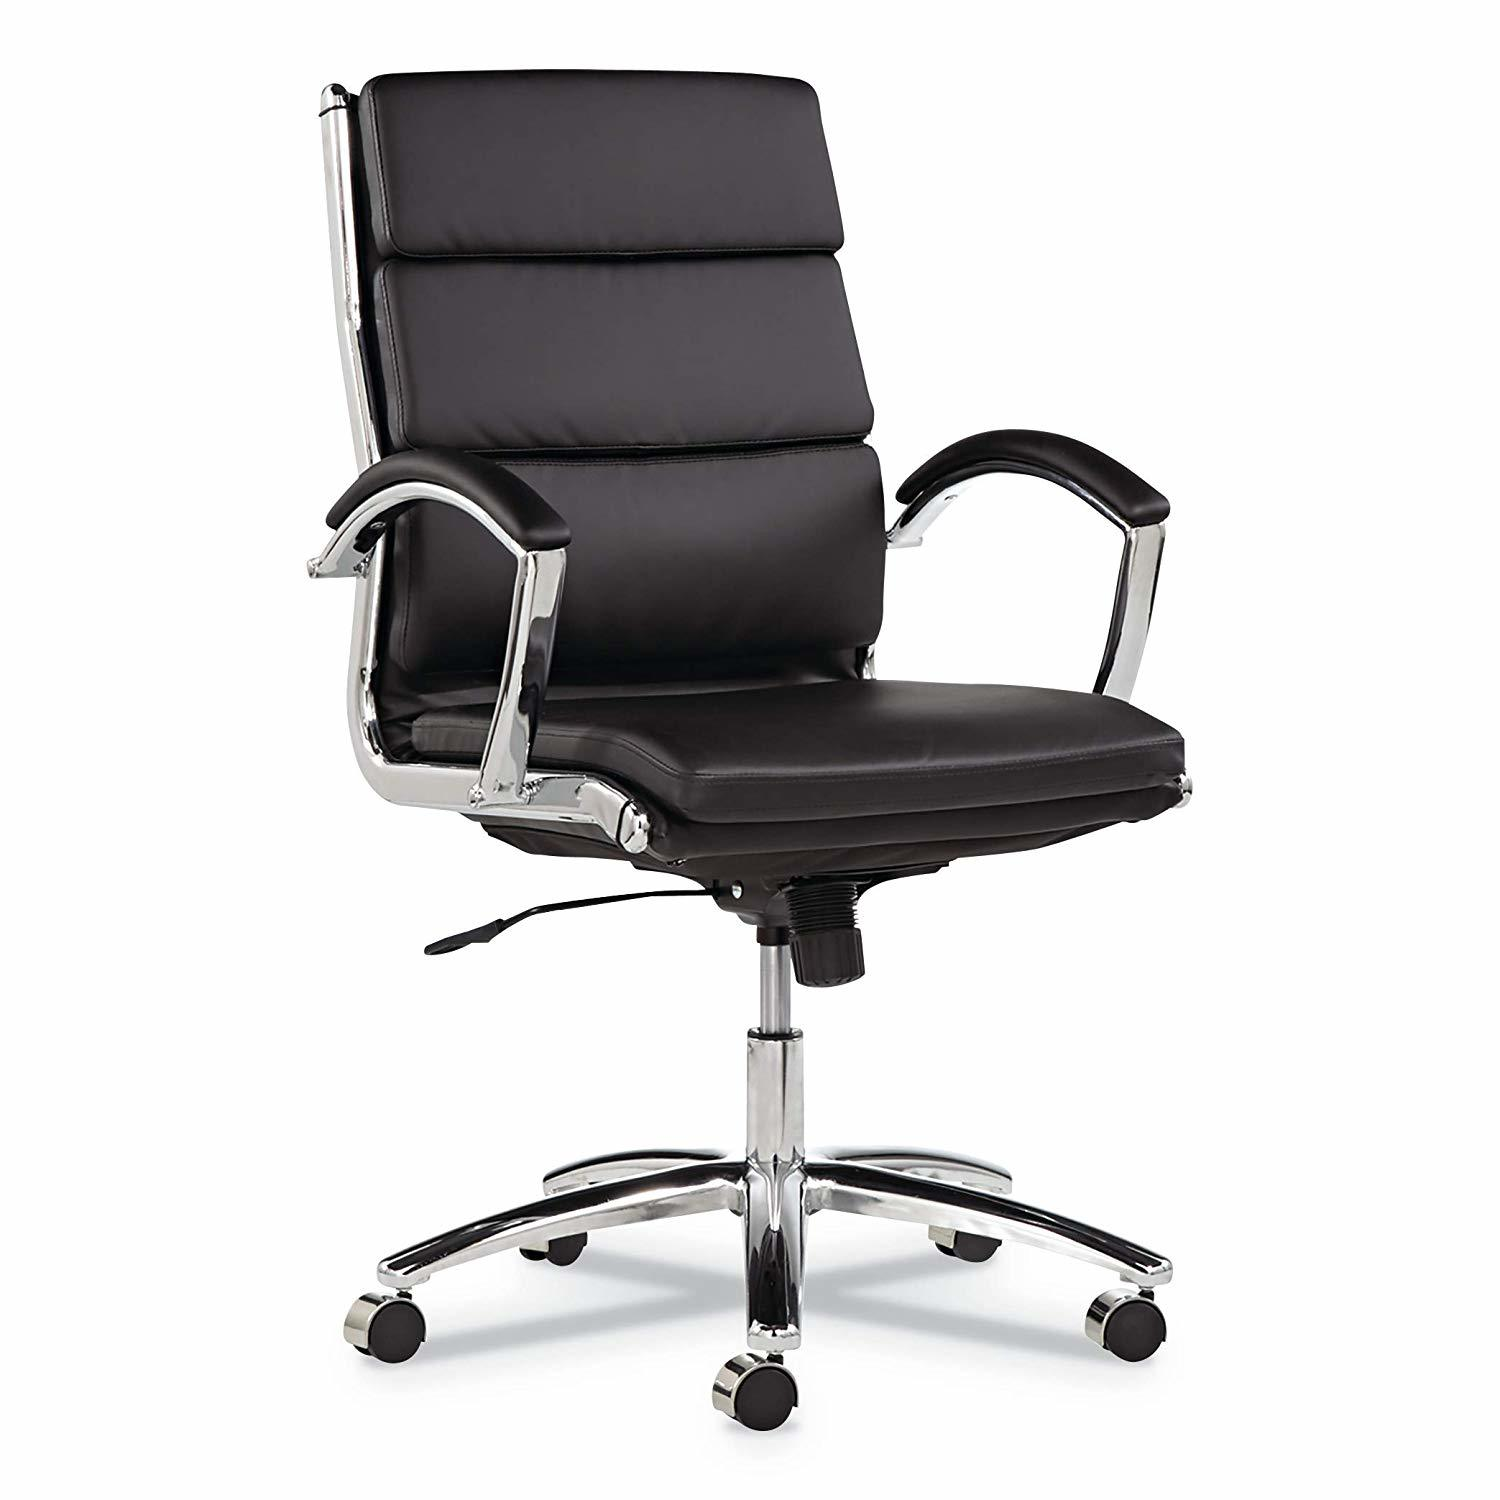 Best Office Chair For Back Pain Reviews Best Office